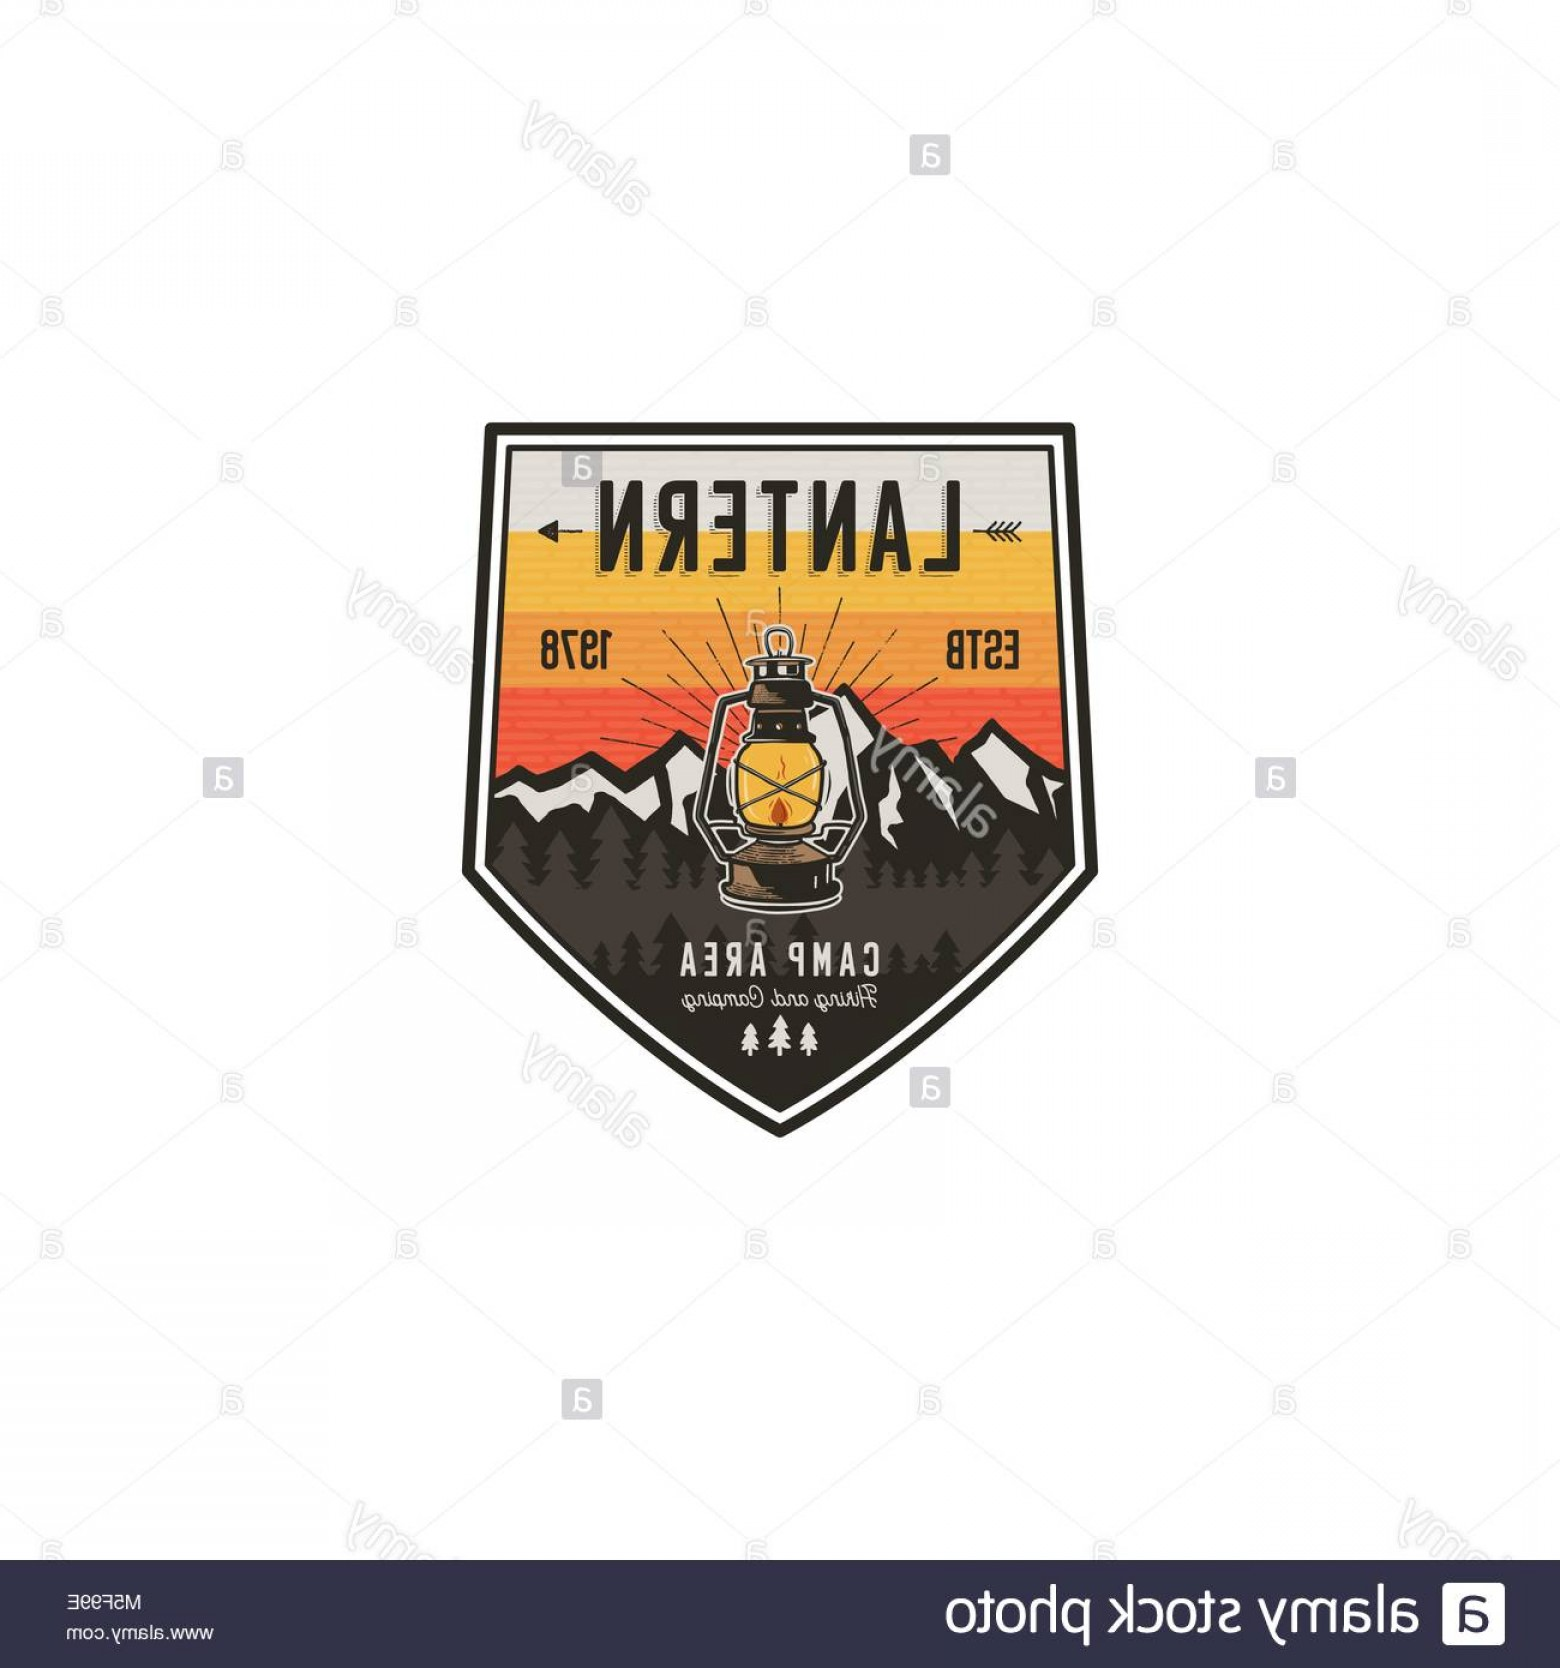 Hipster Logo Vectors Mountain: Stock Photo Camping And Hiking Vintage Badge Mountain Explorer Label Outdoor Adventure